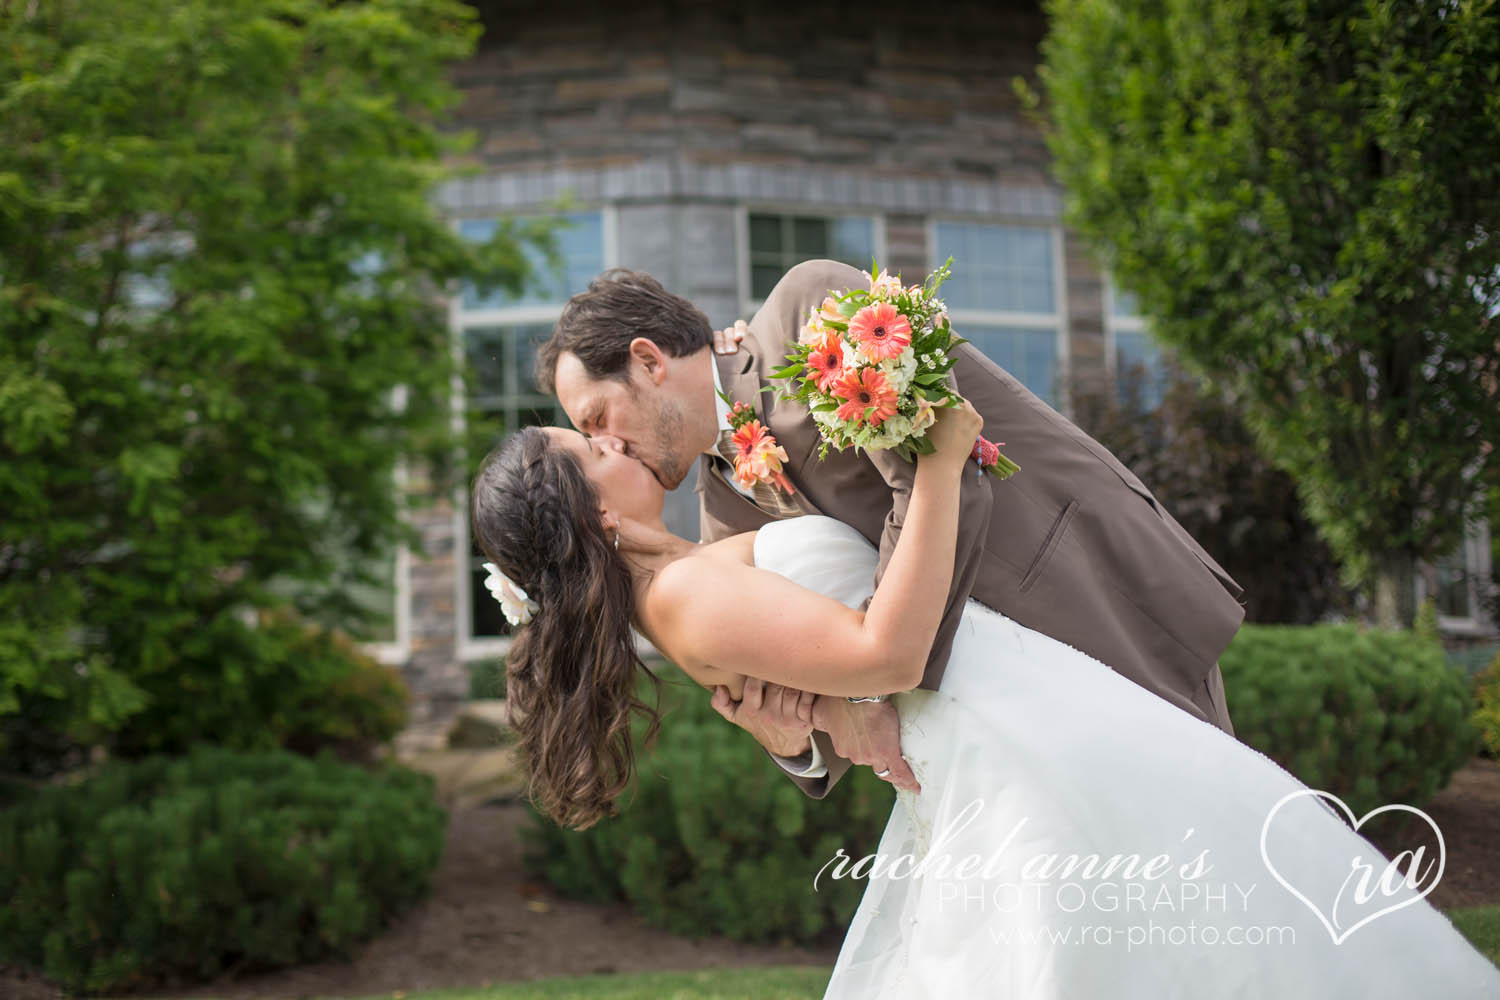 TCR-RED FERN WEDDING KERSEY PA-21.jpg